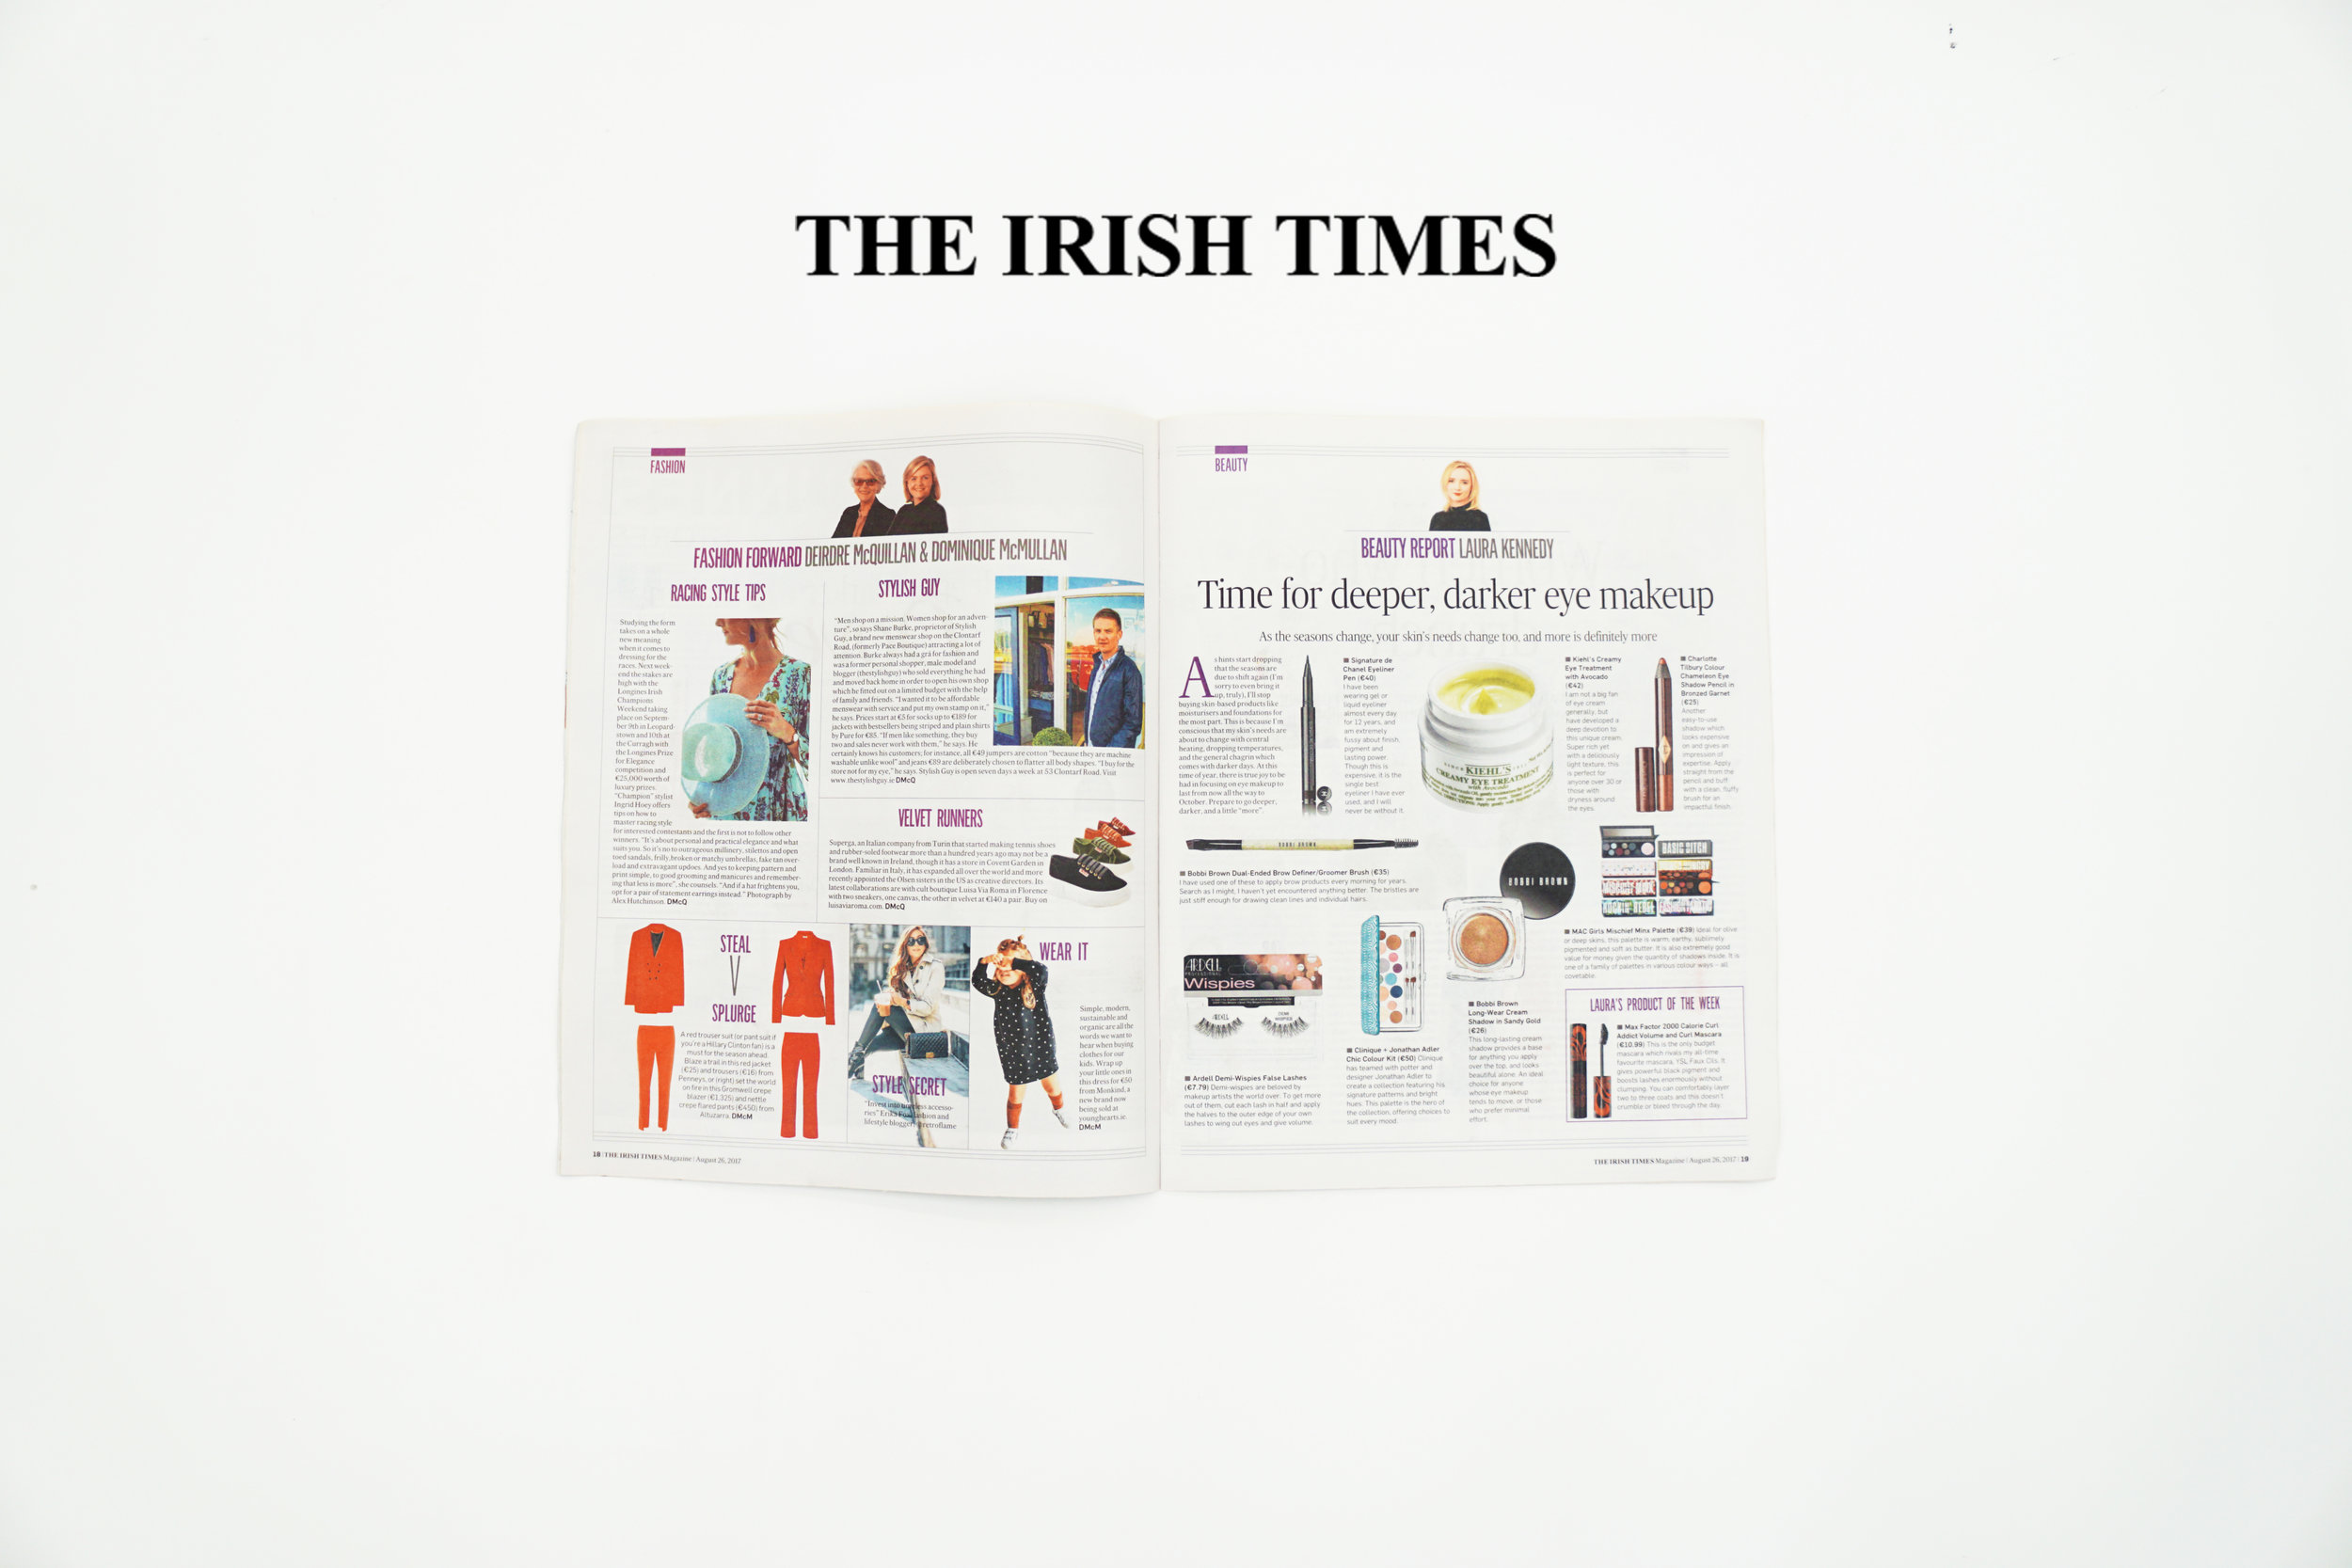 the irish times4.jpg